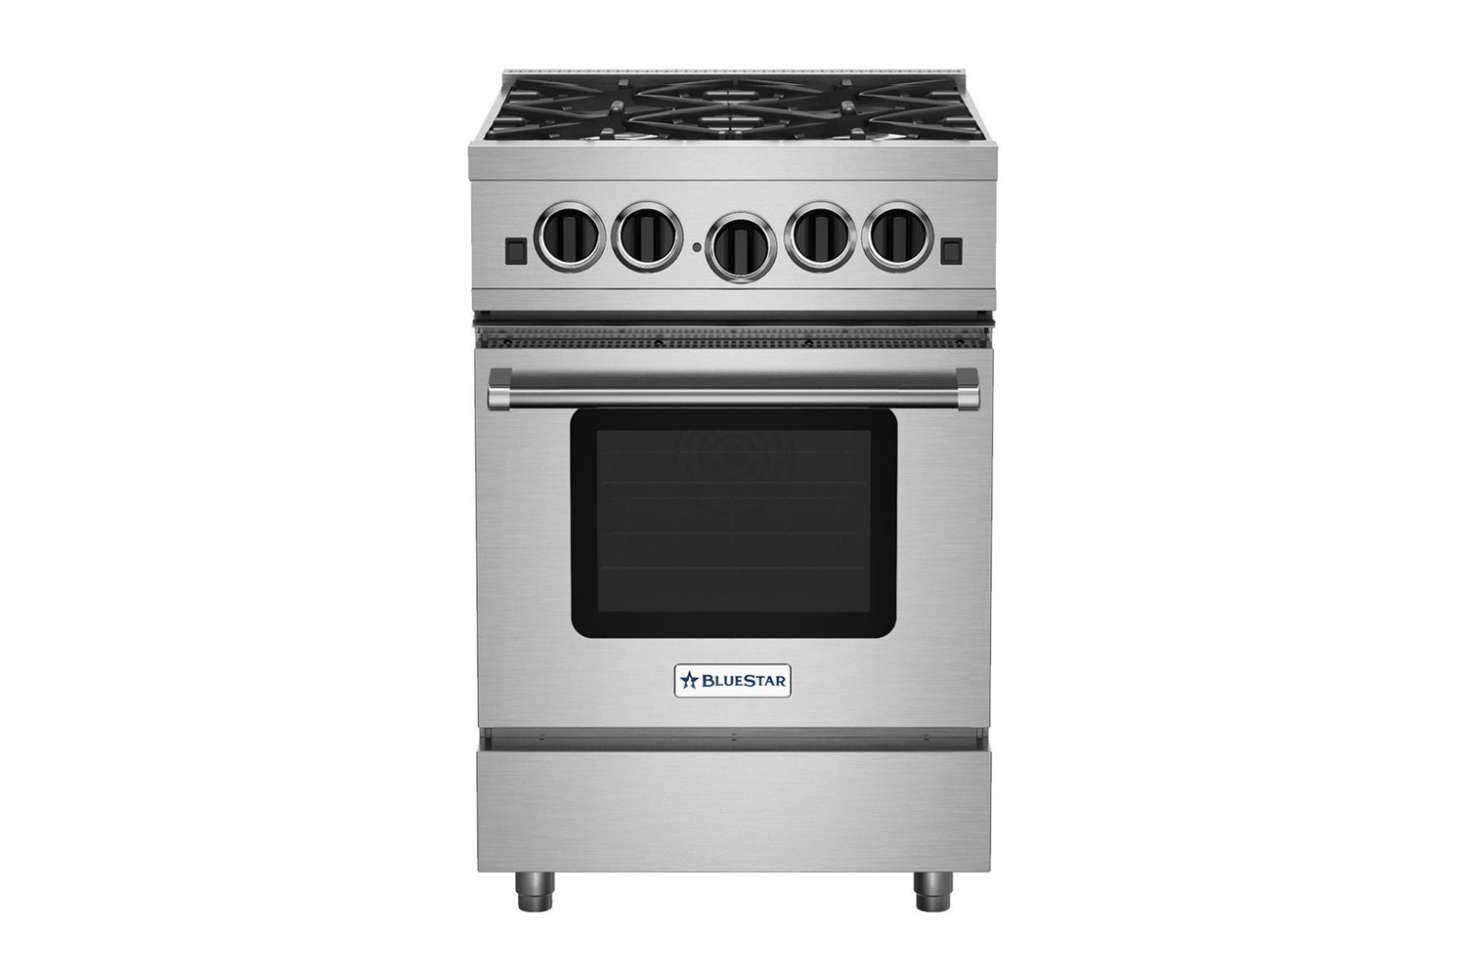 Professional performance downsized: The BlueStar -Inch Culinary Series Sealed Burner Rangein stainless steel has four open burners with up to